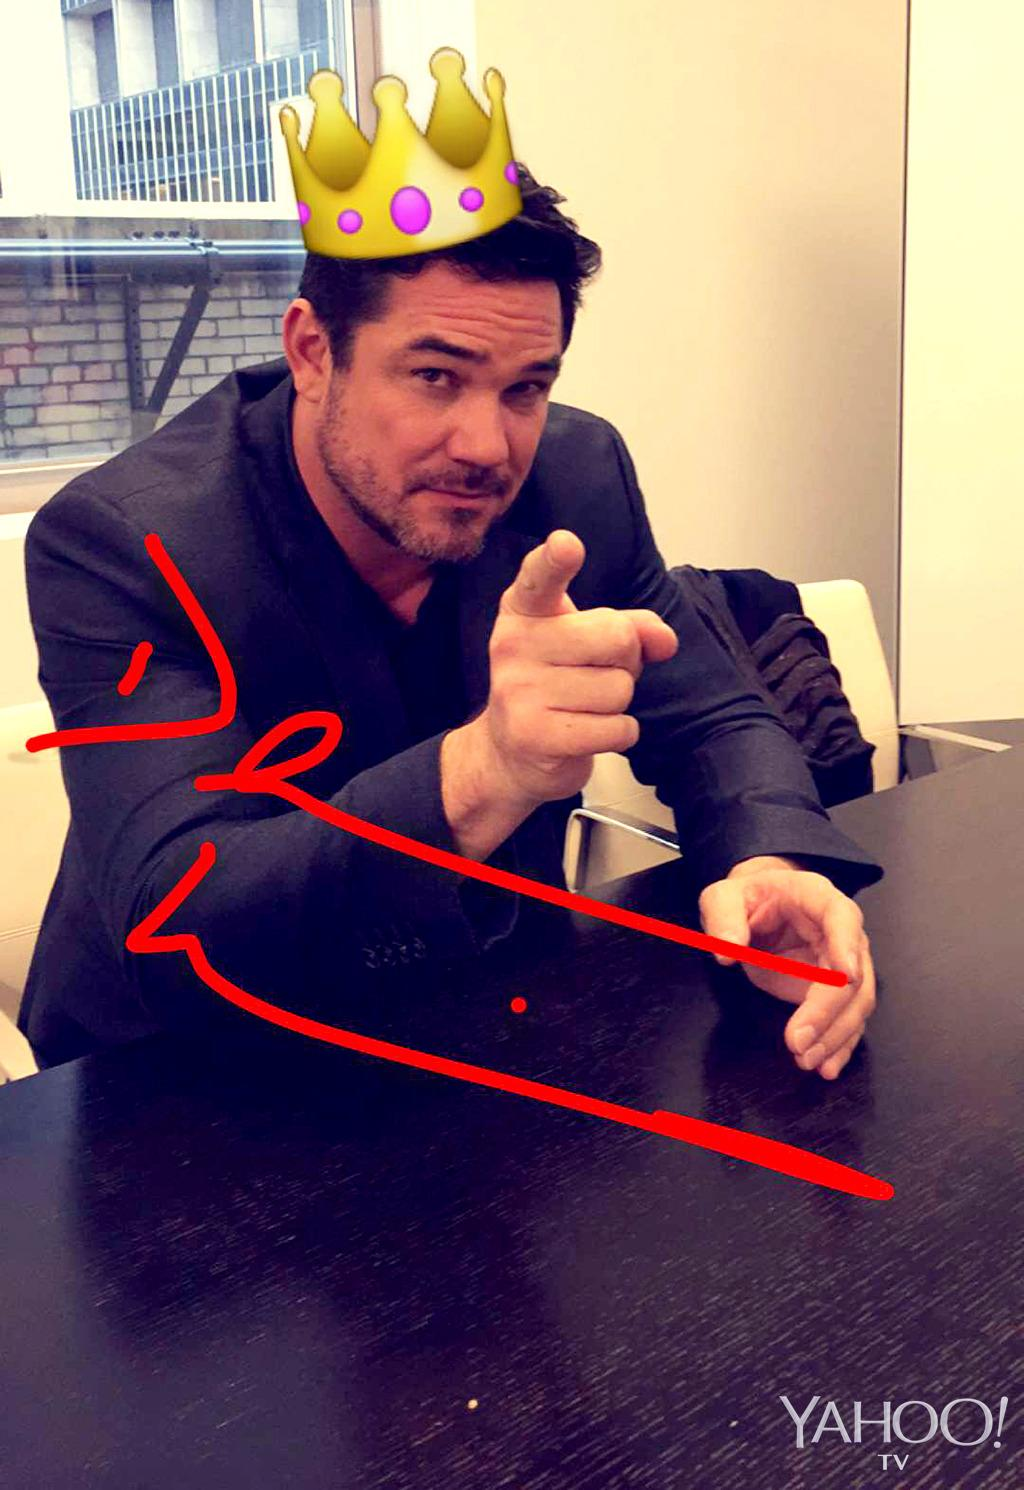 Oh Snap! Crazy Autographed Celebrity Headshots From Snapchat